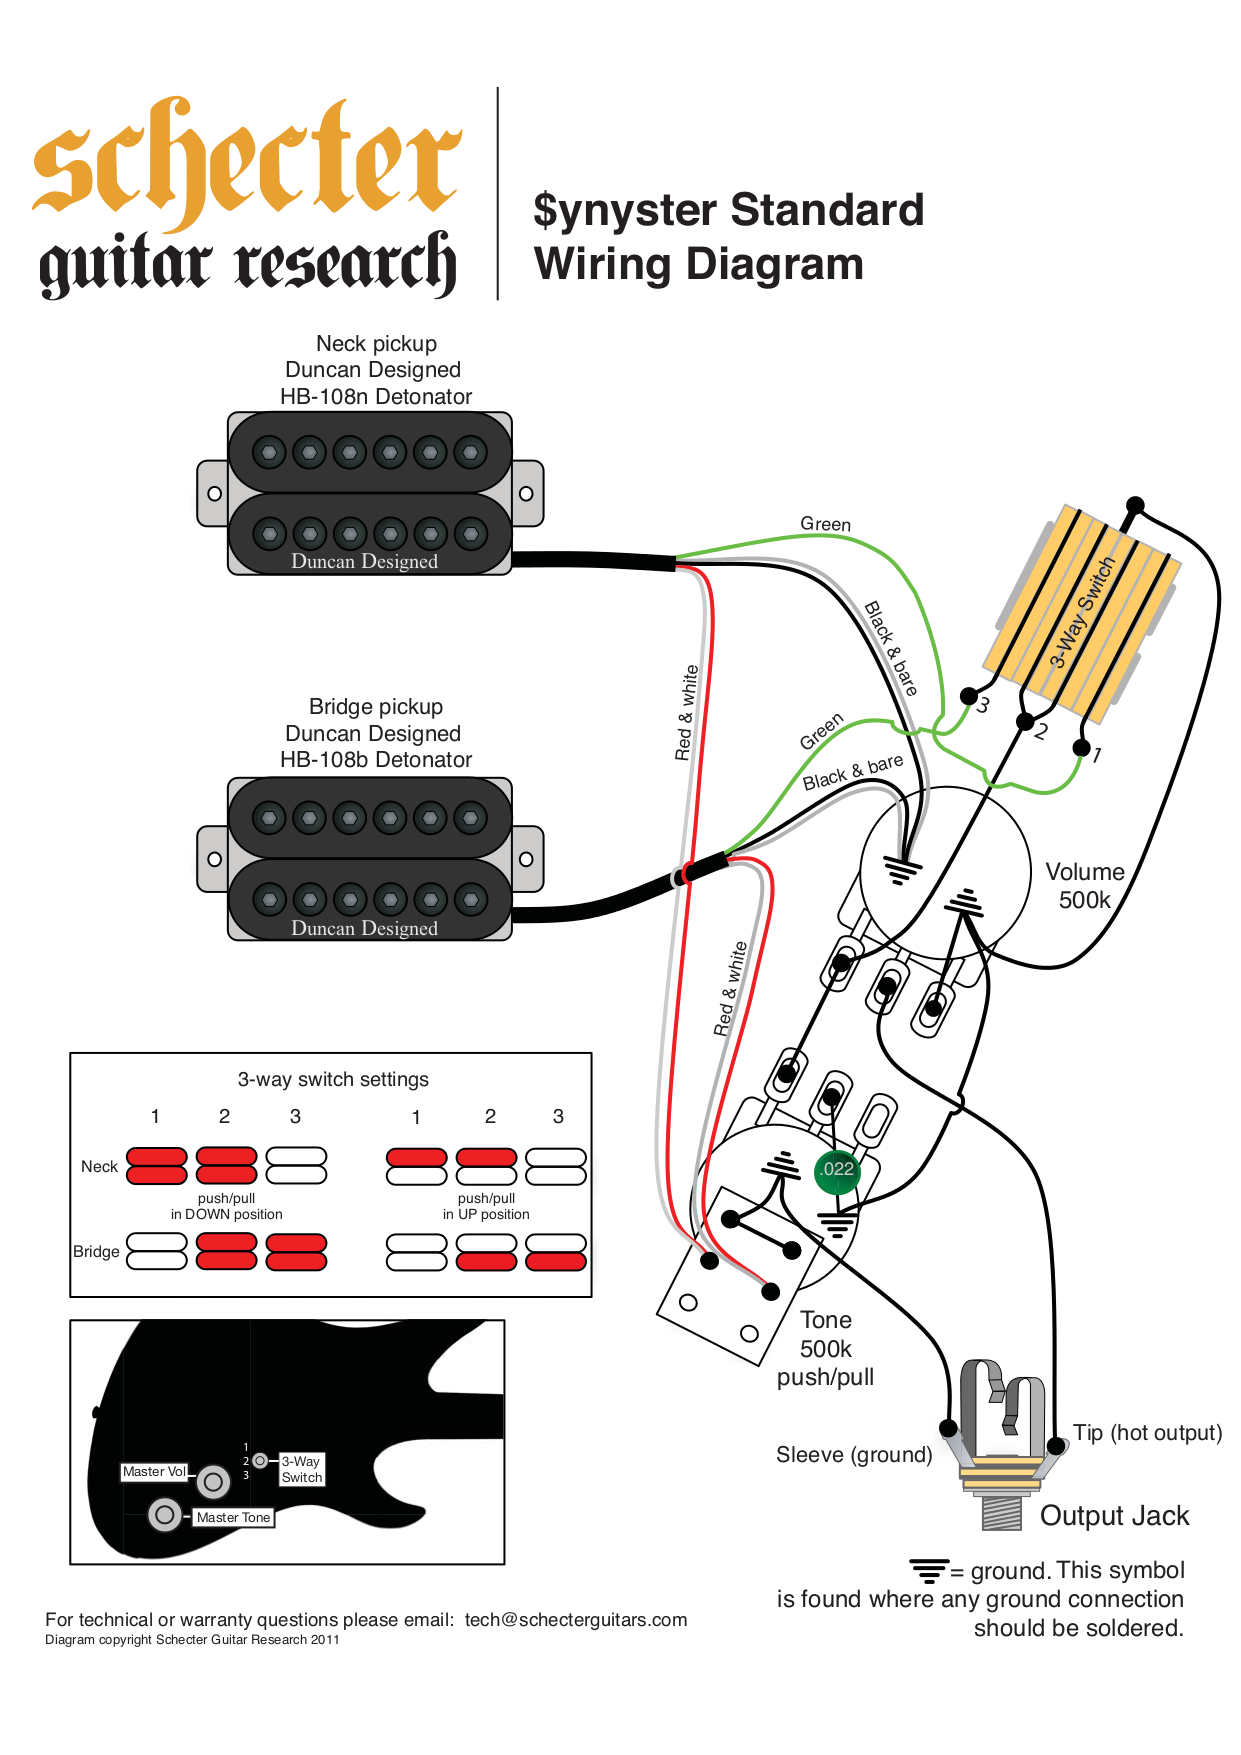 34 Schecter Diamond Series Wiring Diagram